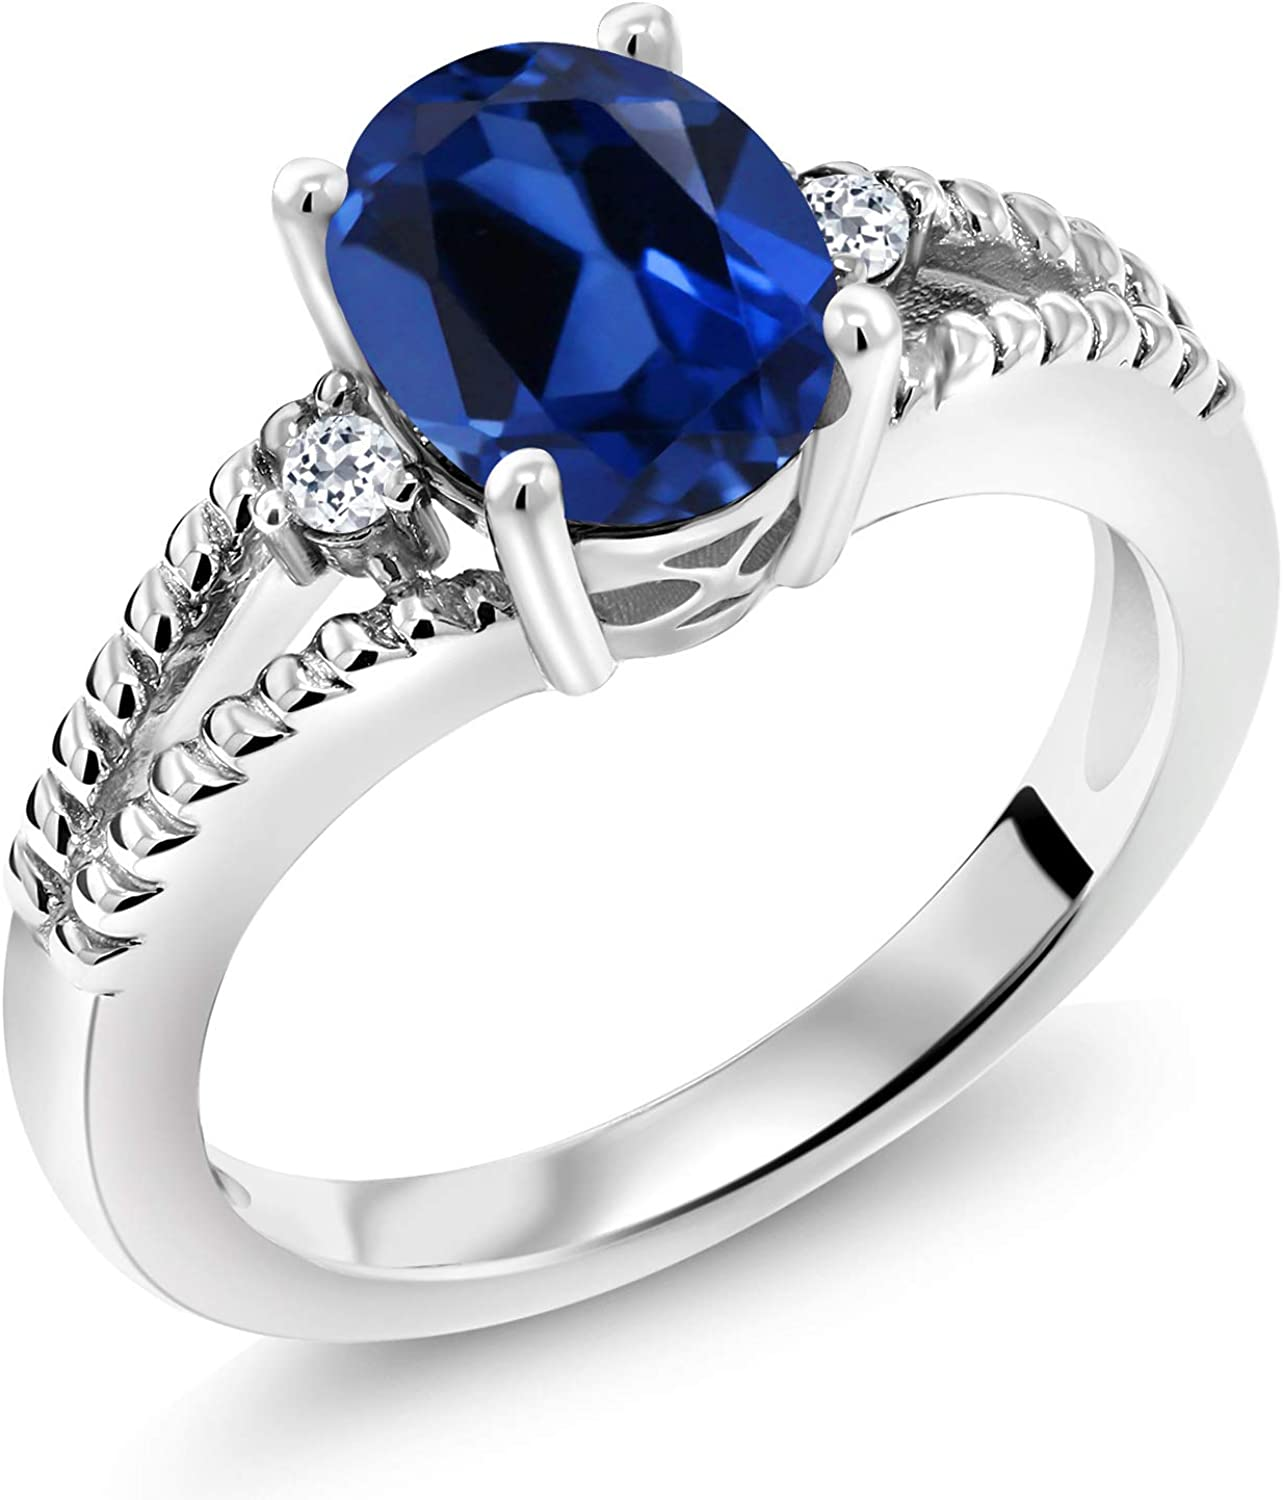 Gem Stone King 2.35 Ct Oval Topaz Created Blue White Sapphire Now on sale 92 Max 53% OFF